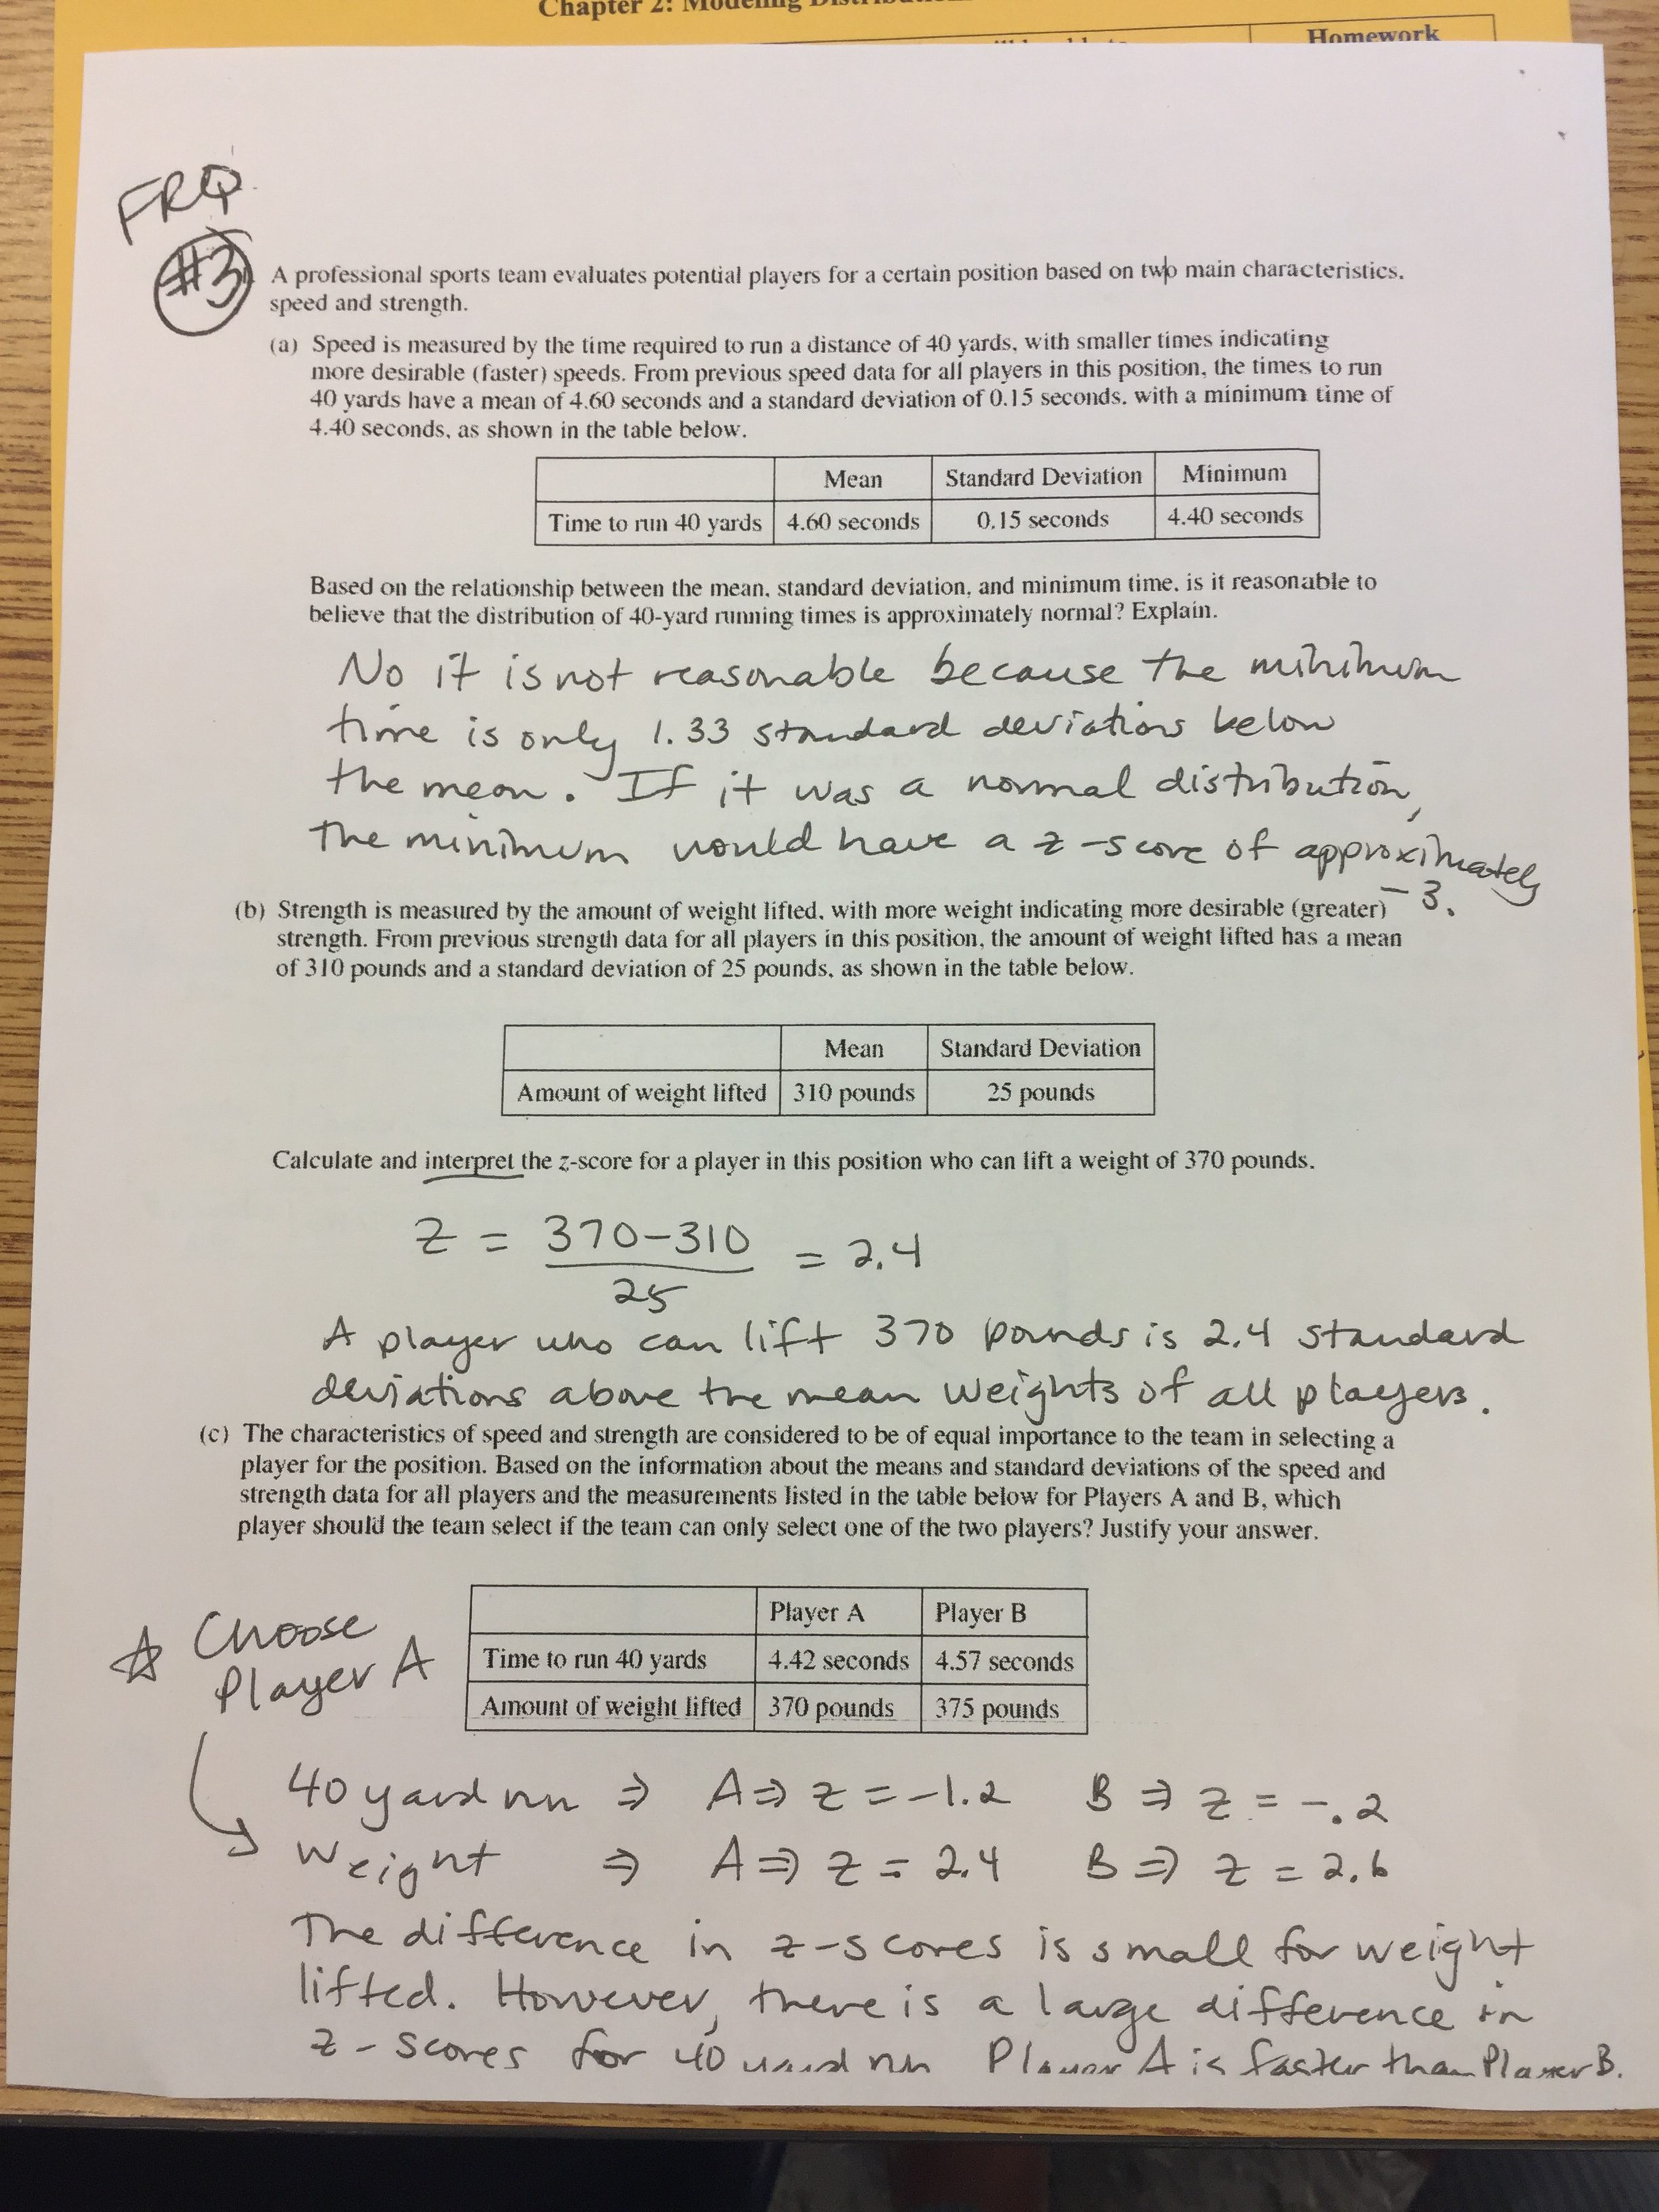 answer to homework of chapter two Chem 334 - fall 1999 organic chemistry i dr carl c wamser chapter 2 homework answers brown & foote, pages 93 - 100 : problems 217 - 25, 27, 29, 30, 32.